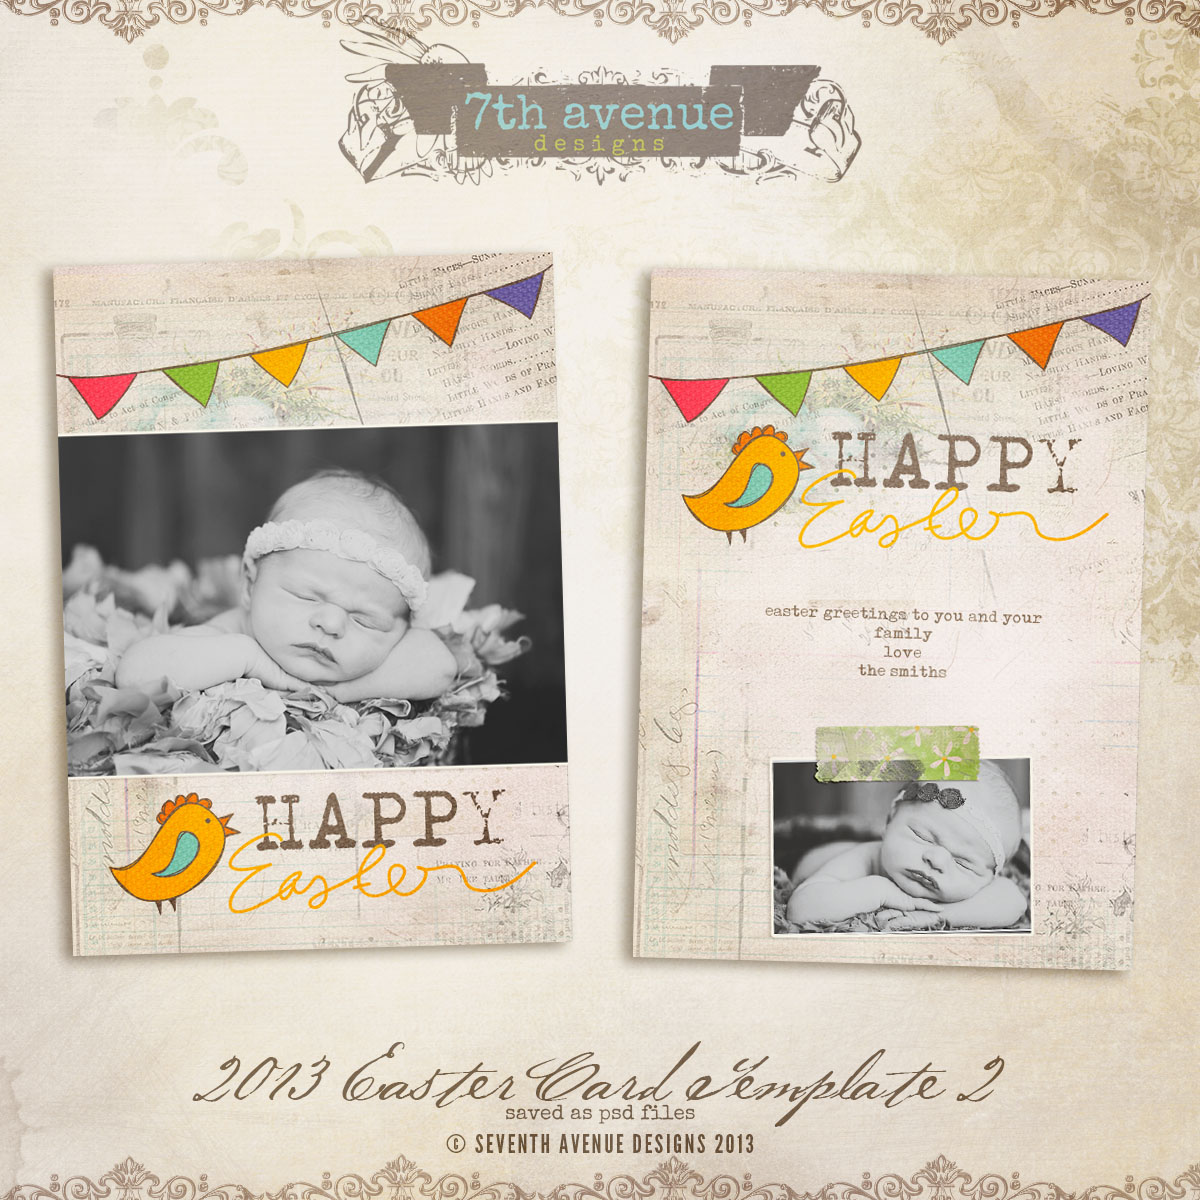 2013 Easter Card vol.2